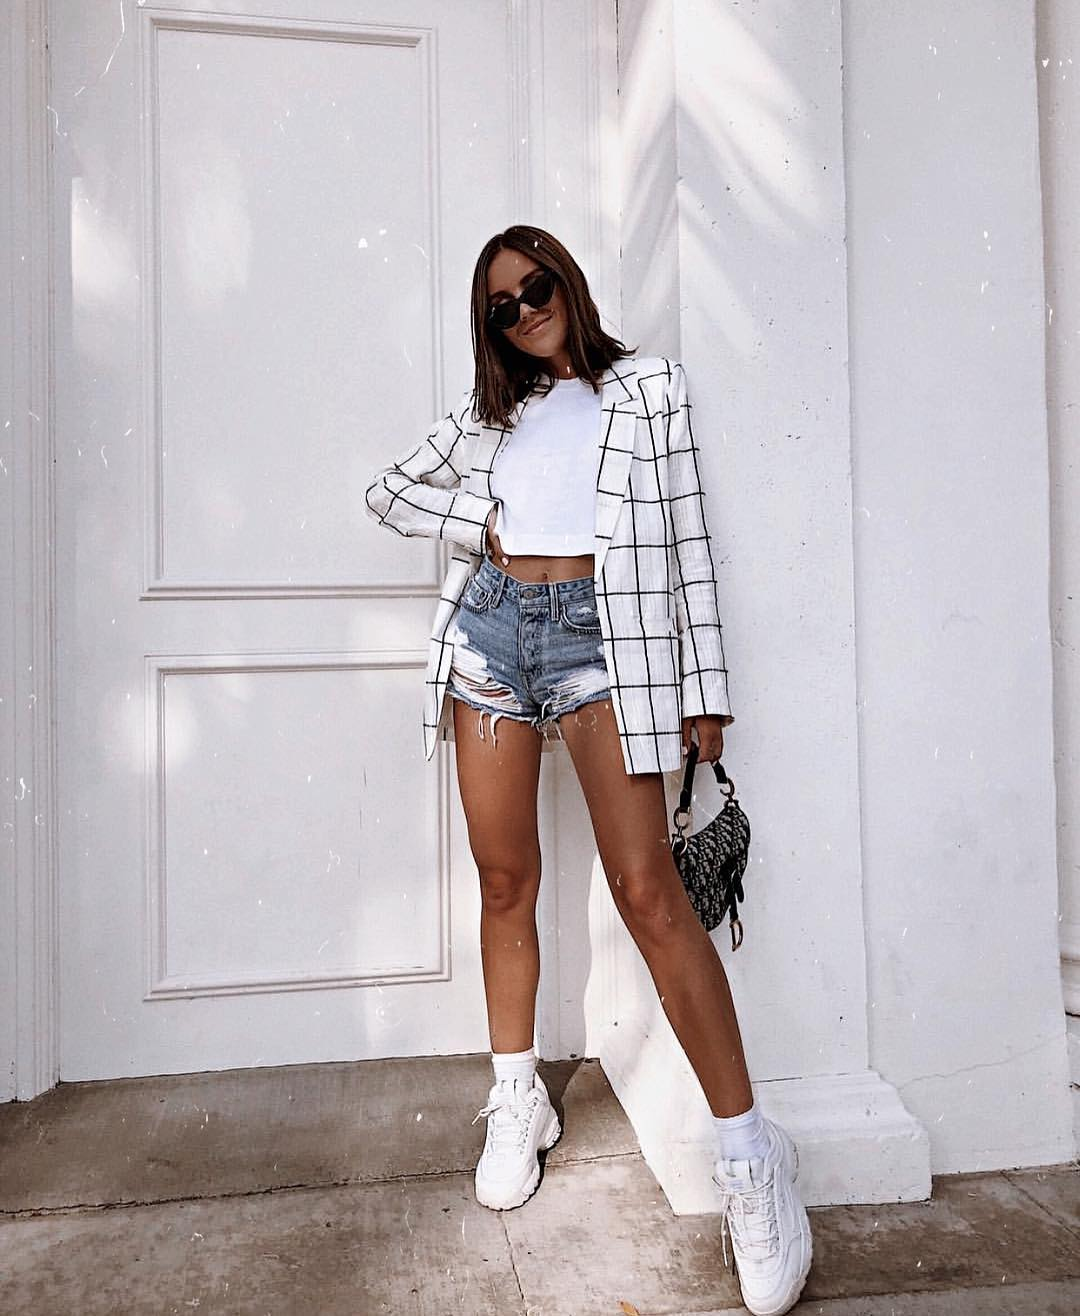 Windowpane White Blazer With White Crop Top, Ripped Denim Shorts And Chunky Kicks In White 2019